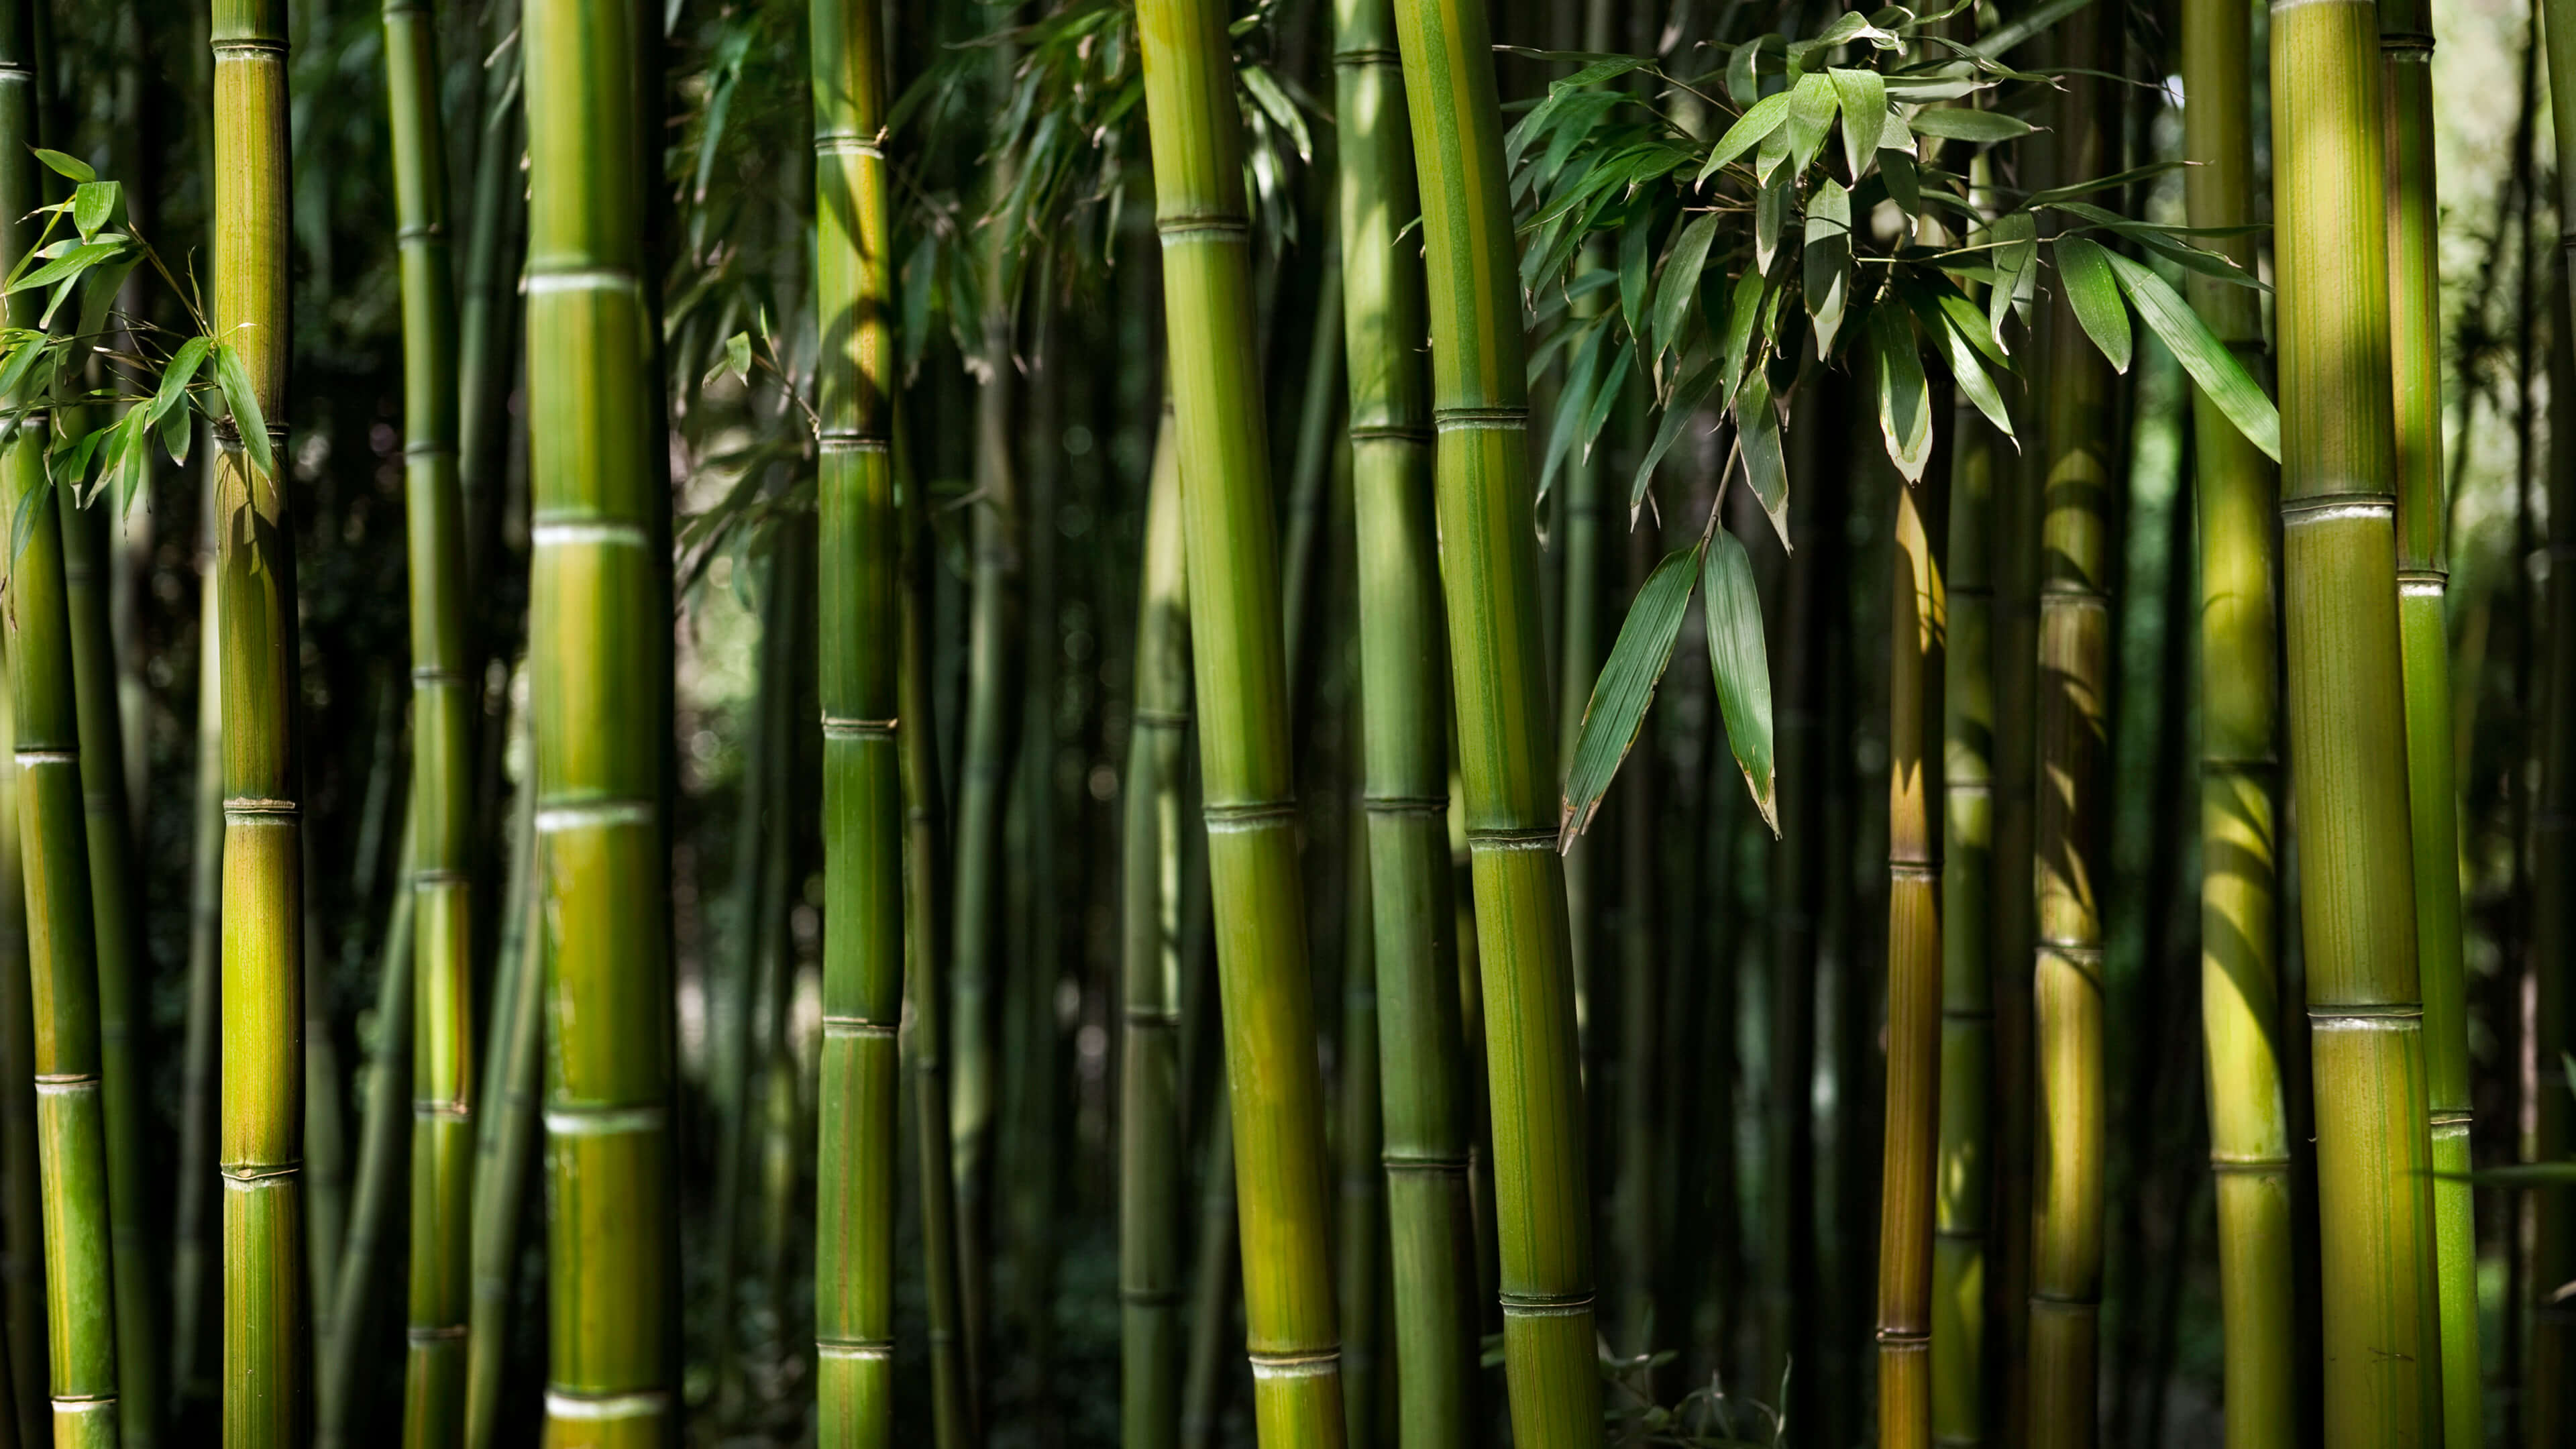 Bamboo 4K wallpapers for your desktop or mobile screen ...